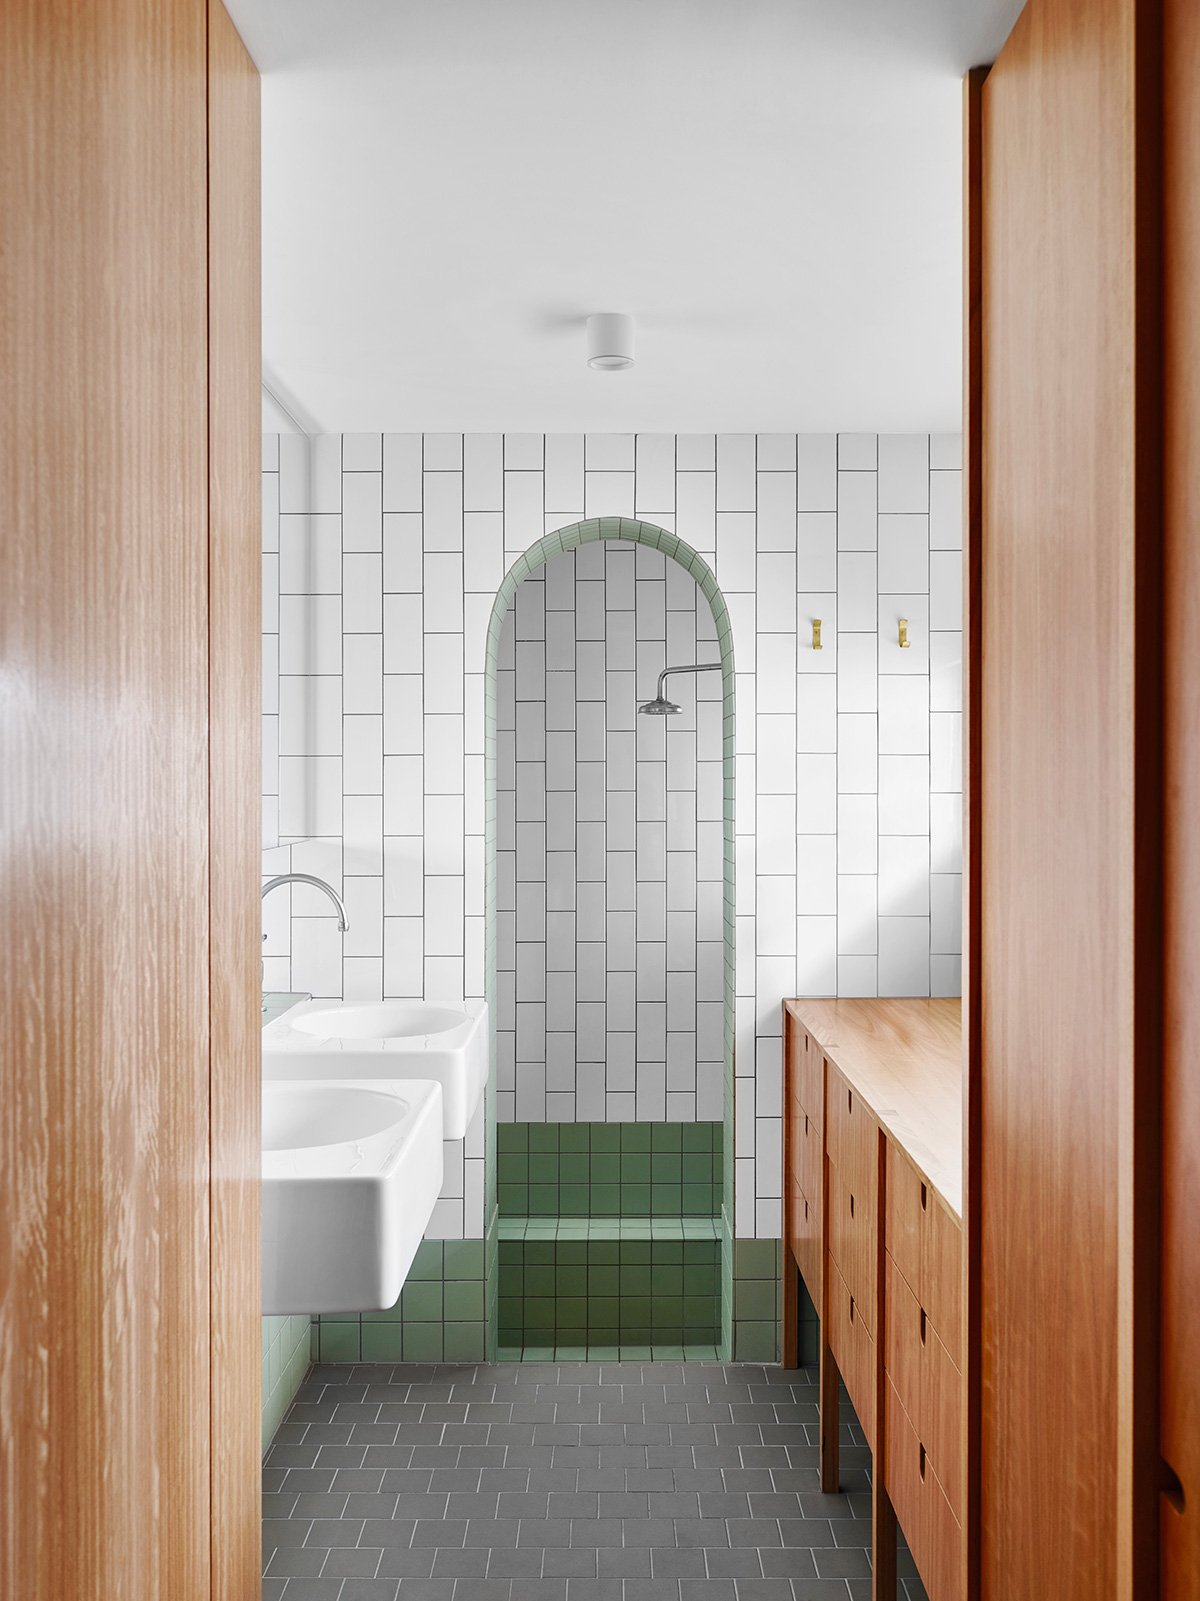 I love how this bathroom from Owen Architecture brings a lot of attention to the arch way by using squared tiles and sharp edges everywhere else. #arch #designtrend #interiors #organicmodern #bathroom #tilebathroom #archdoorway